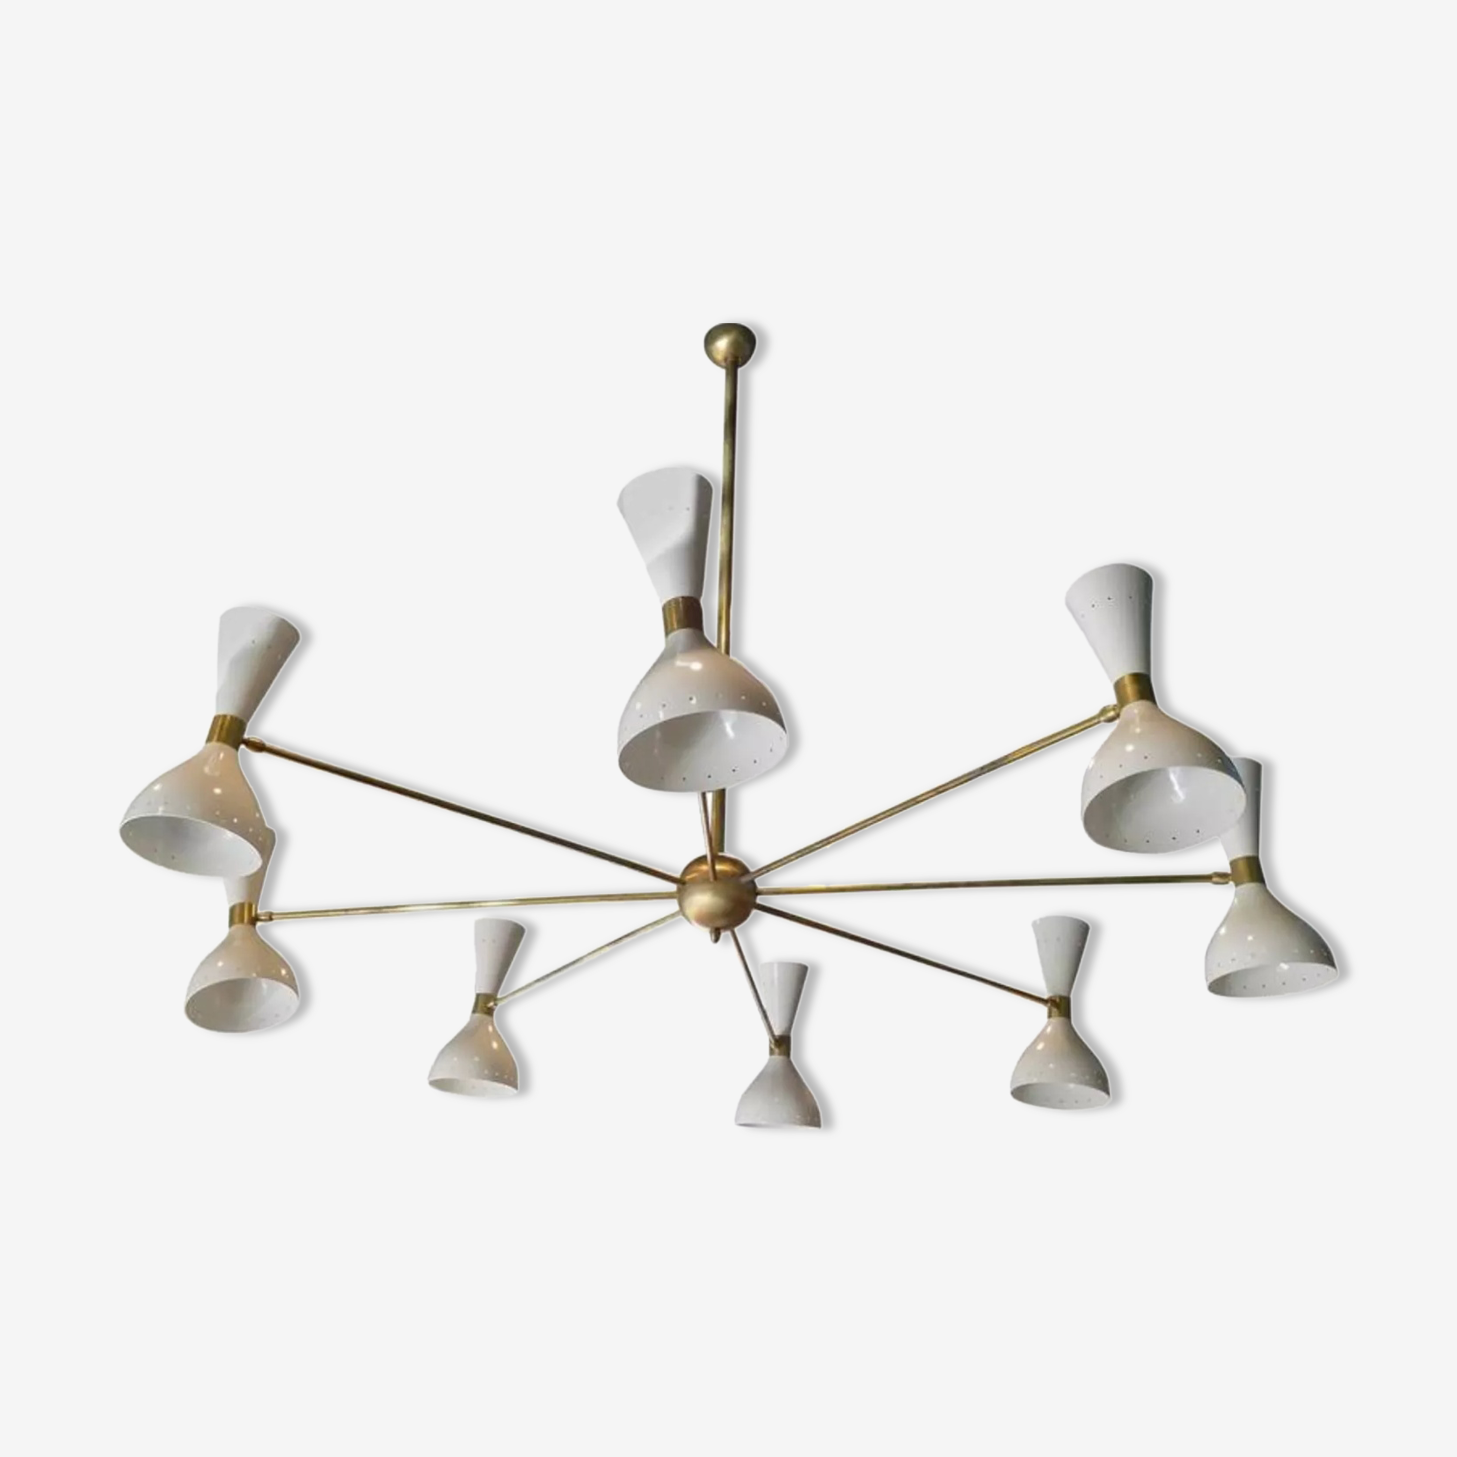 Chandelier in the style of the Italian creations of the 50s